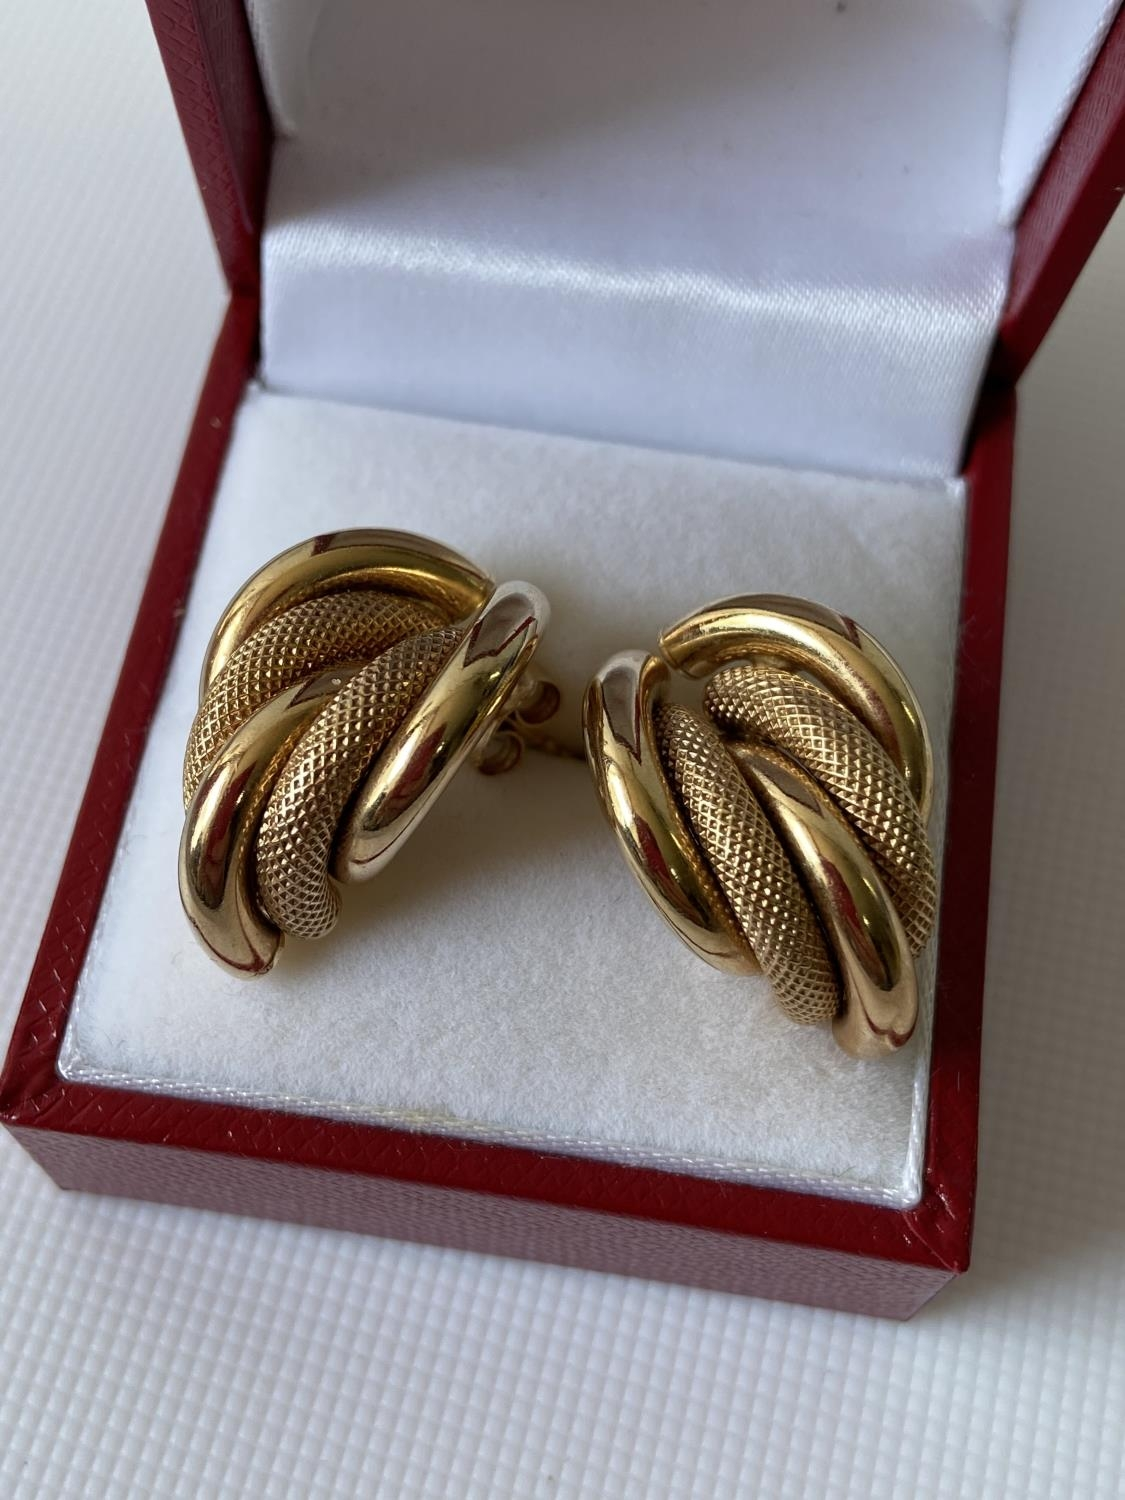 A pair of 9ct gold earrings [3.9g] - Image 2 of 6